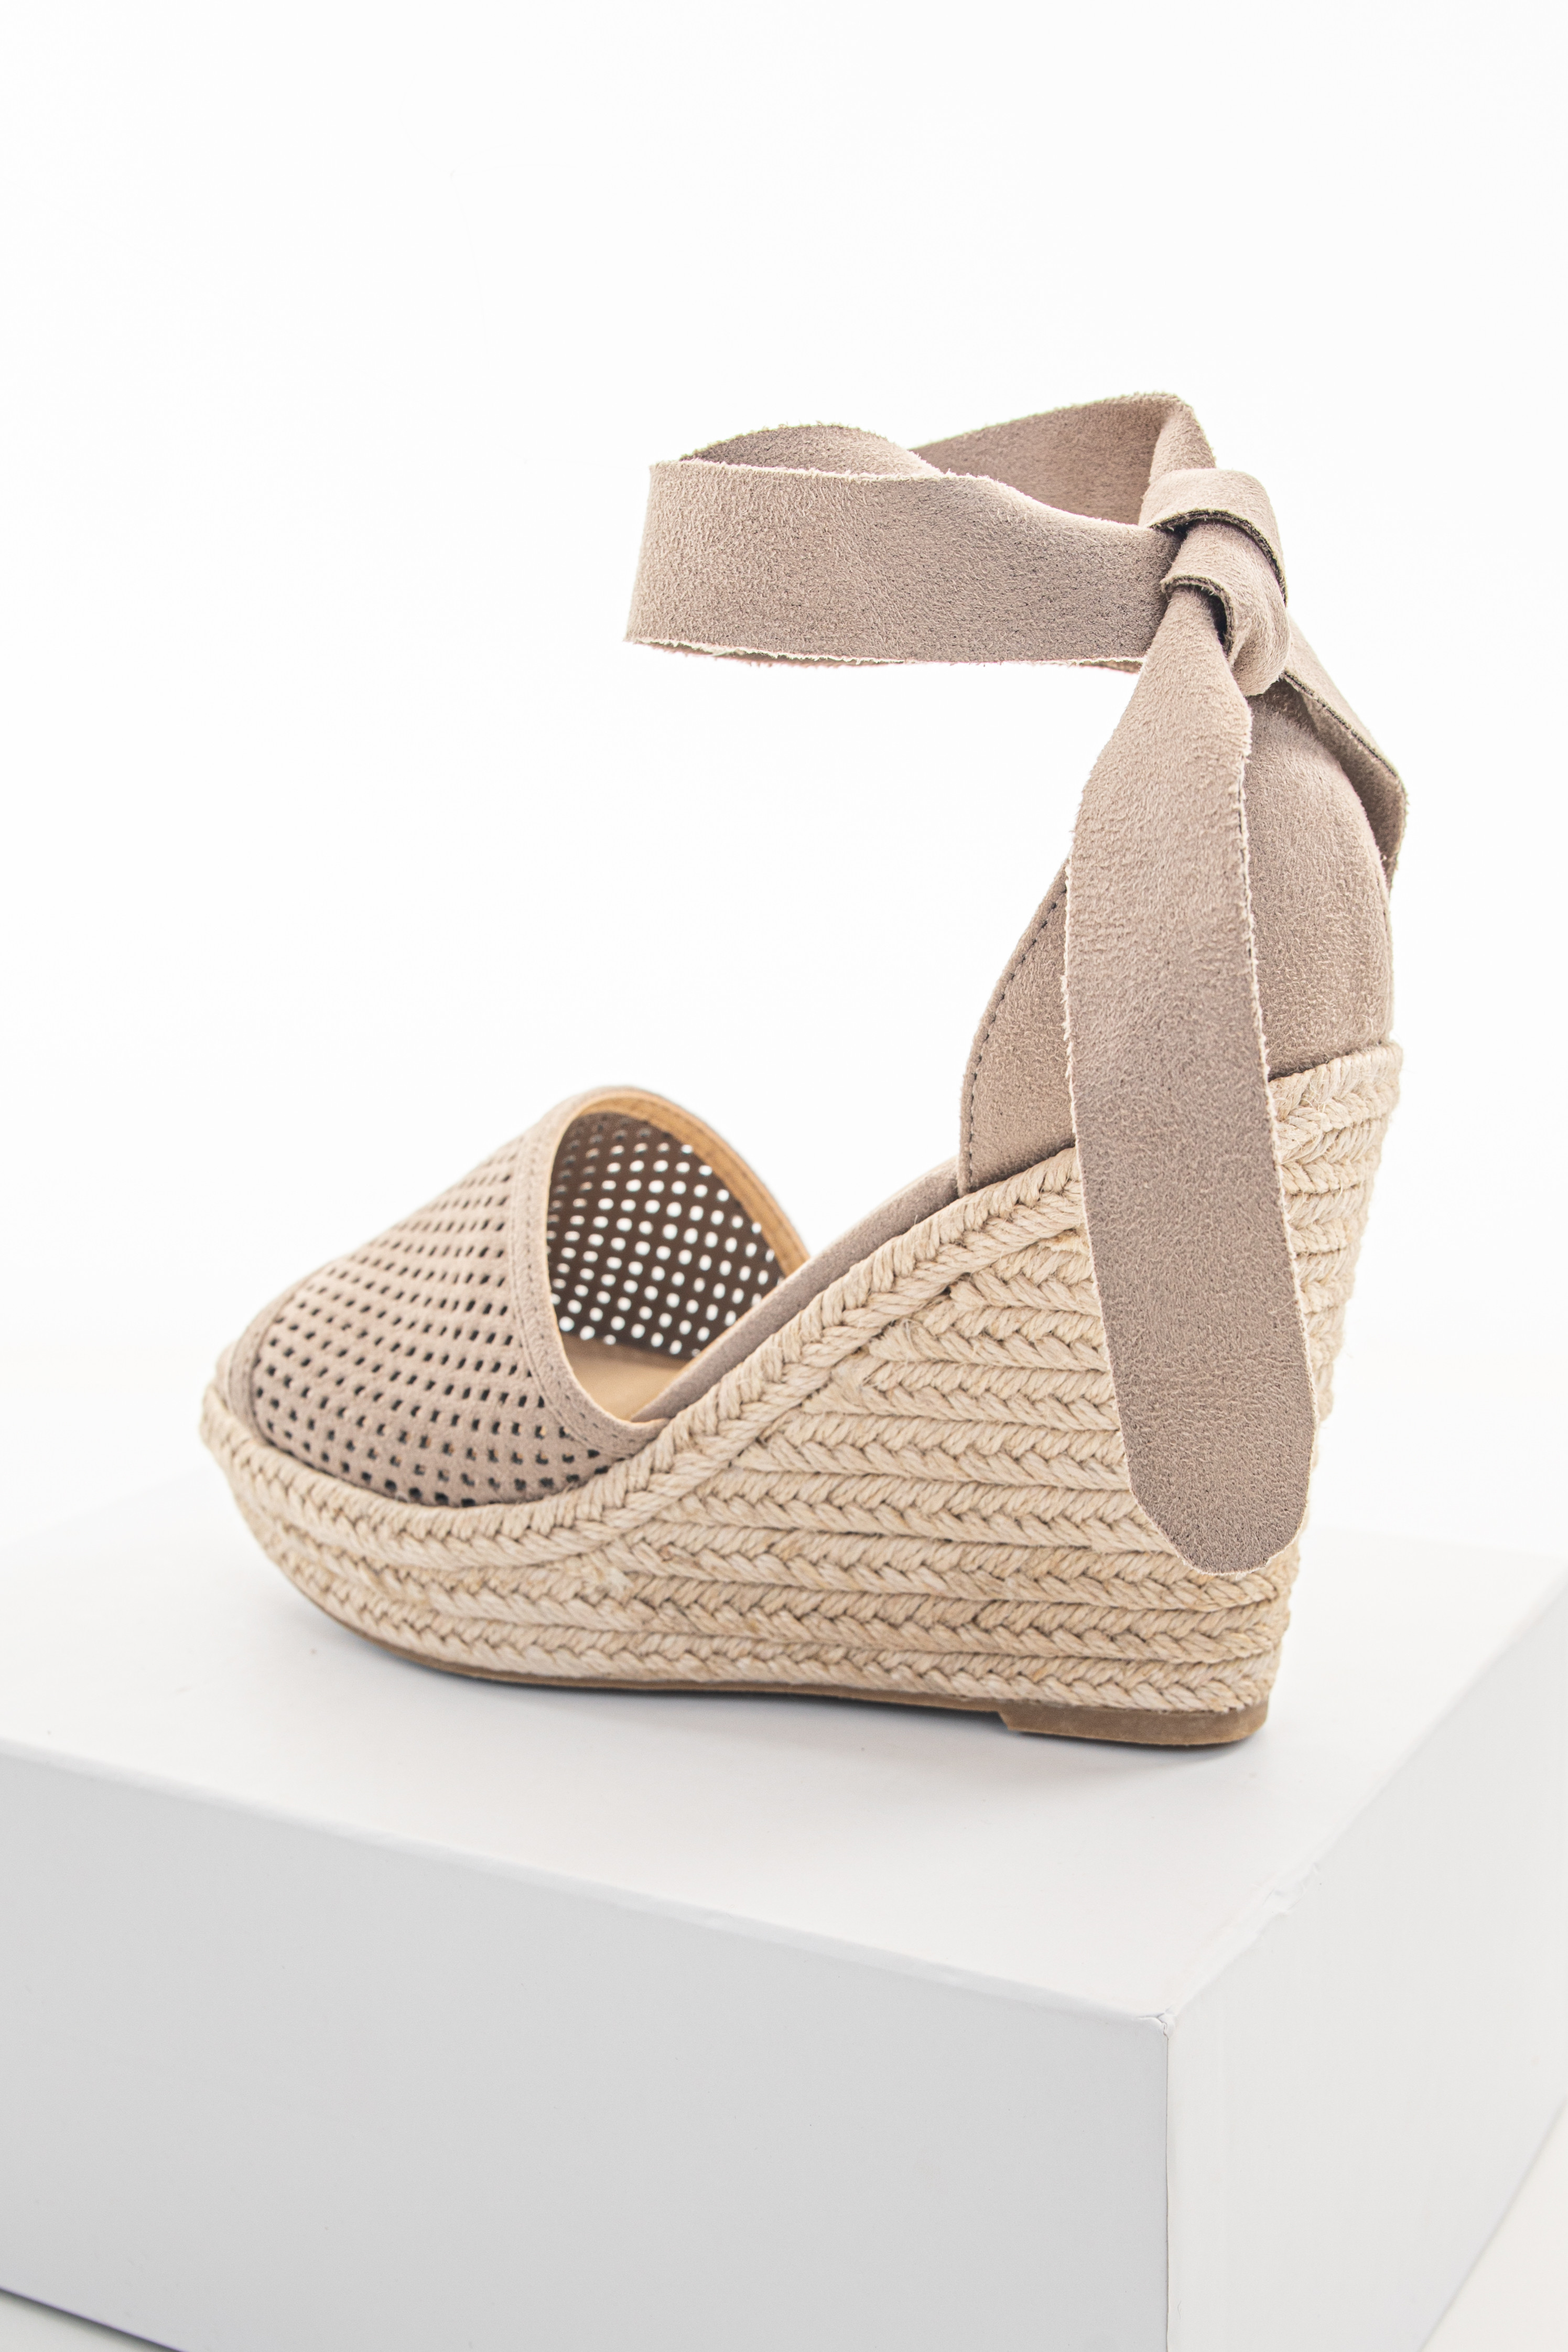 Taupe Suede Wedge with Braided Heel Detail